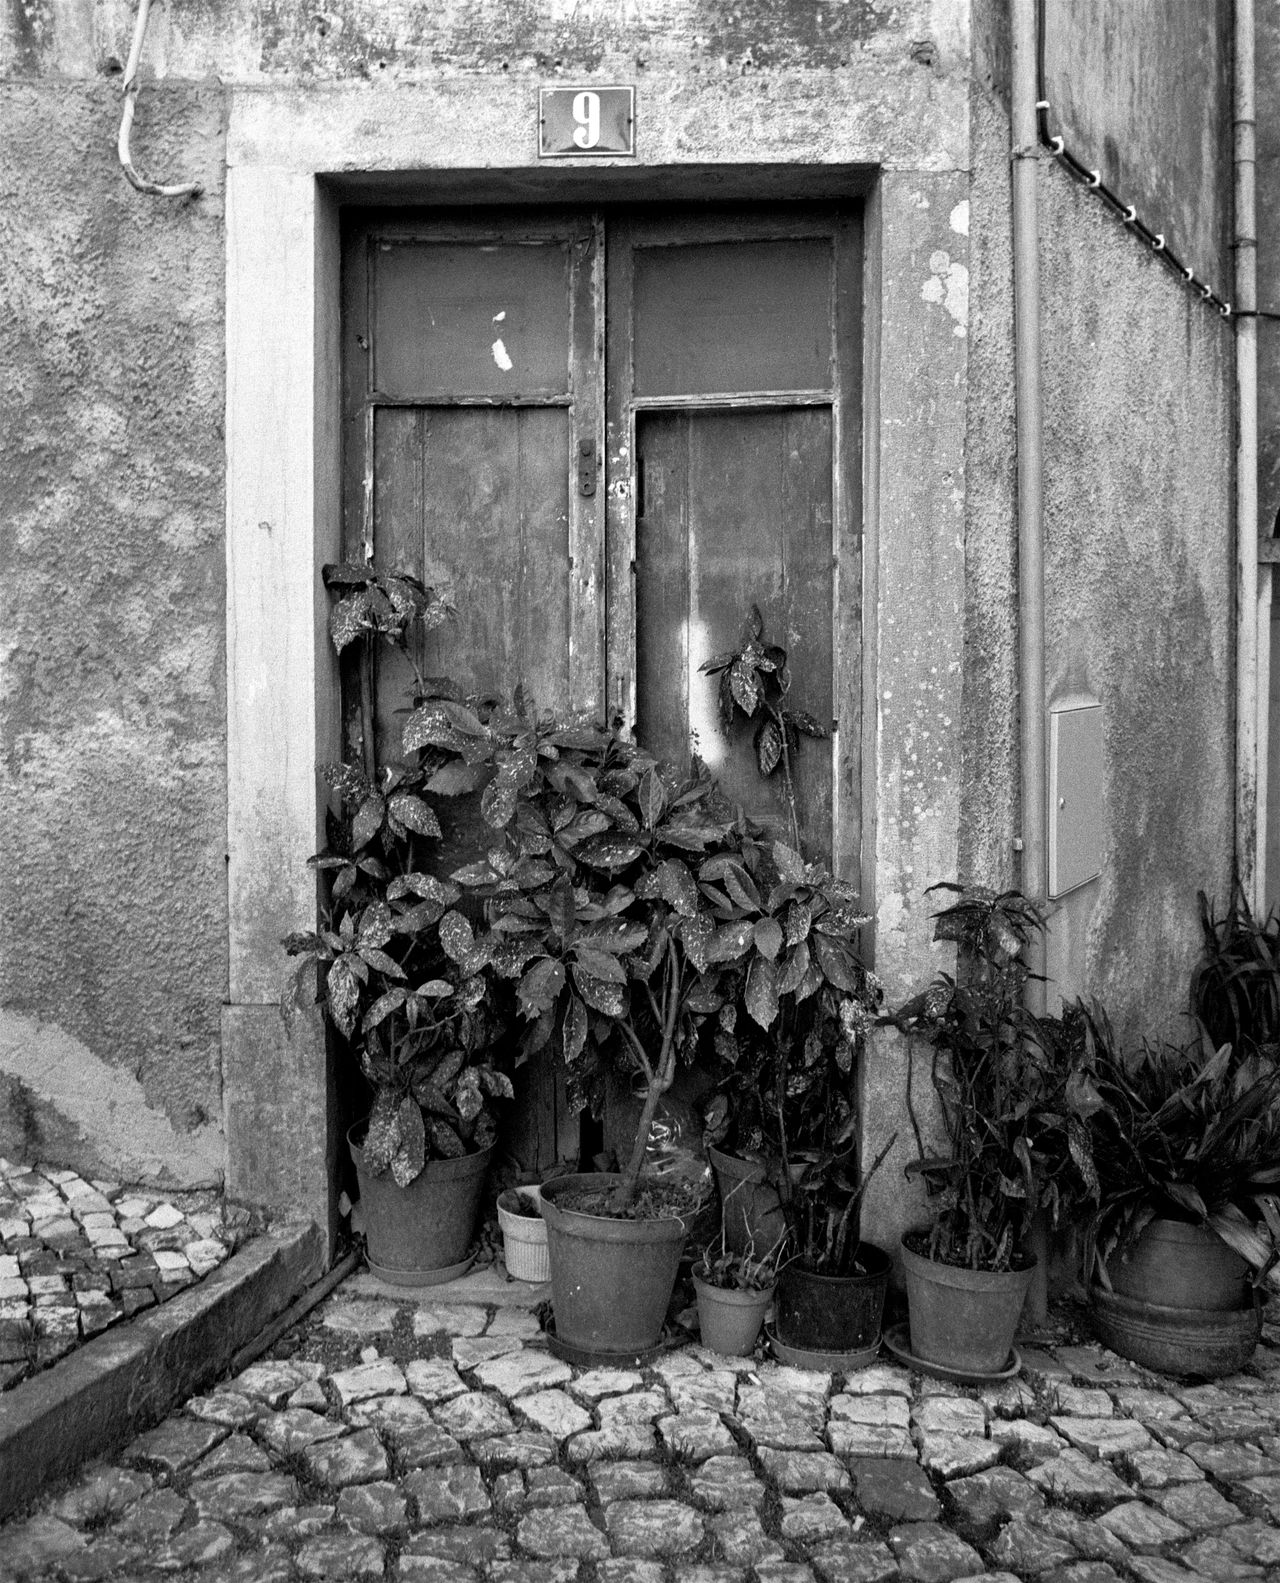 Analogue Analogue Photography Architecture Black And White Blackandwhite Building Exterior Built Structure Close-up Day Door Doors Film Film Photography House Leaf No People Outdoors Plant Plants Portugal